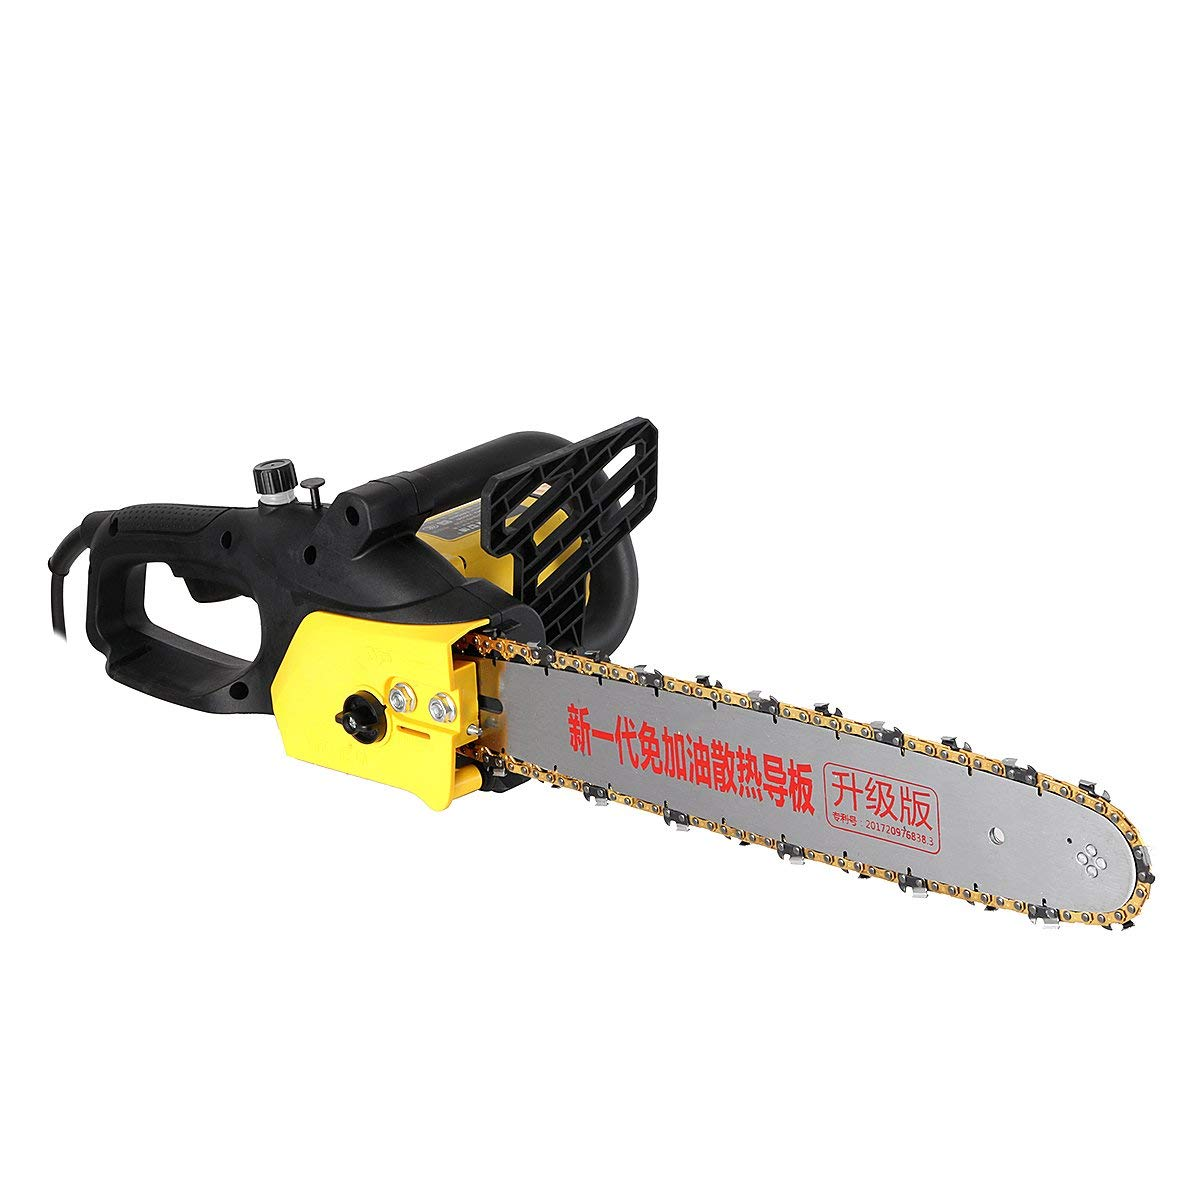 Cheap Small Electric Saw For Cutting Wood Find Small